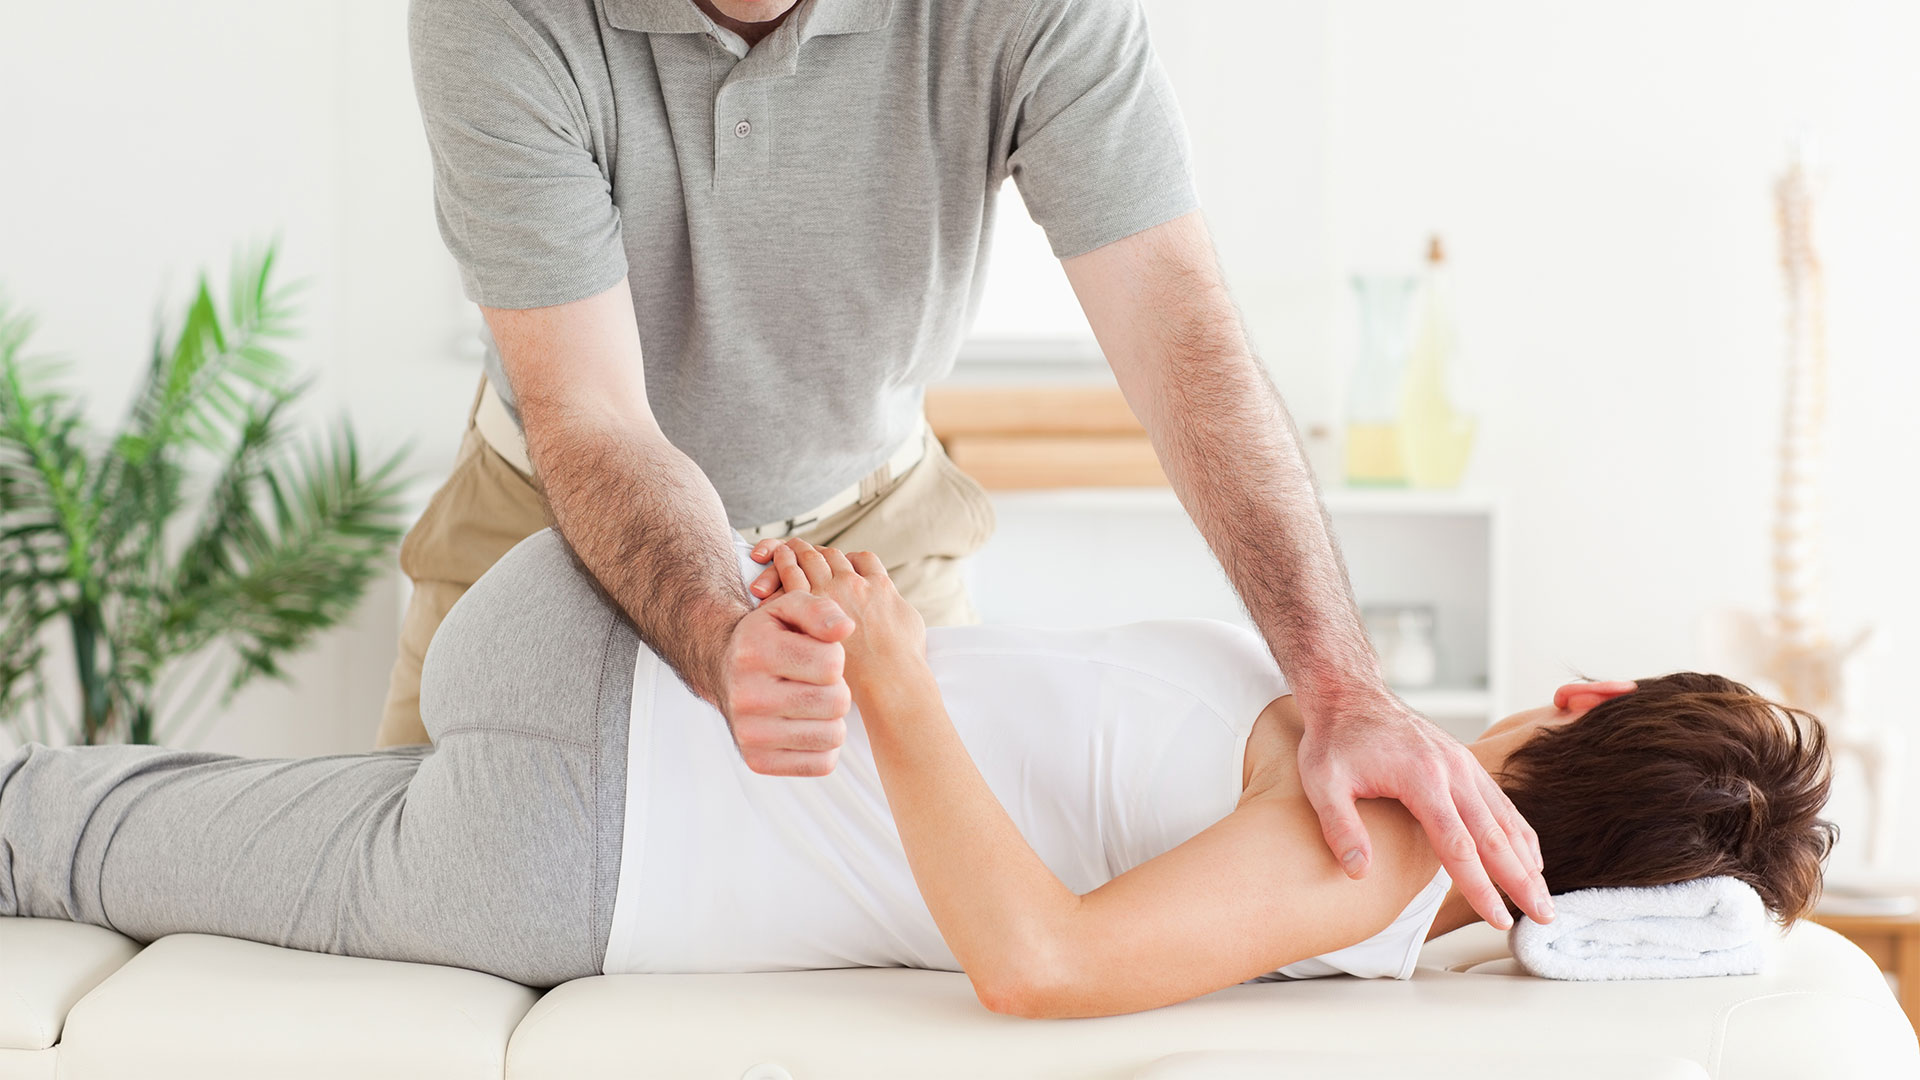 The Many Benefits of Regular Chiropractic Care